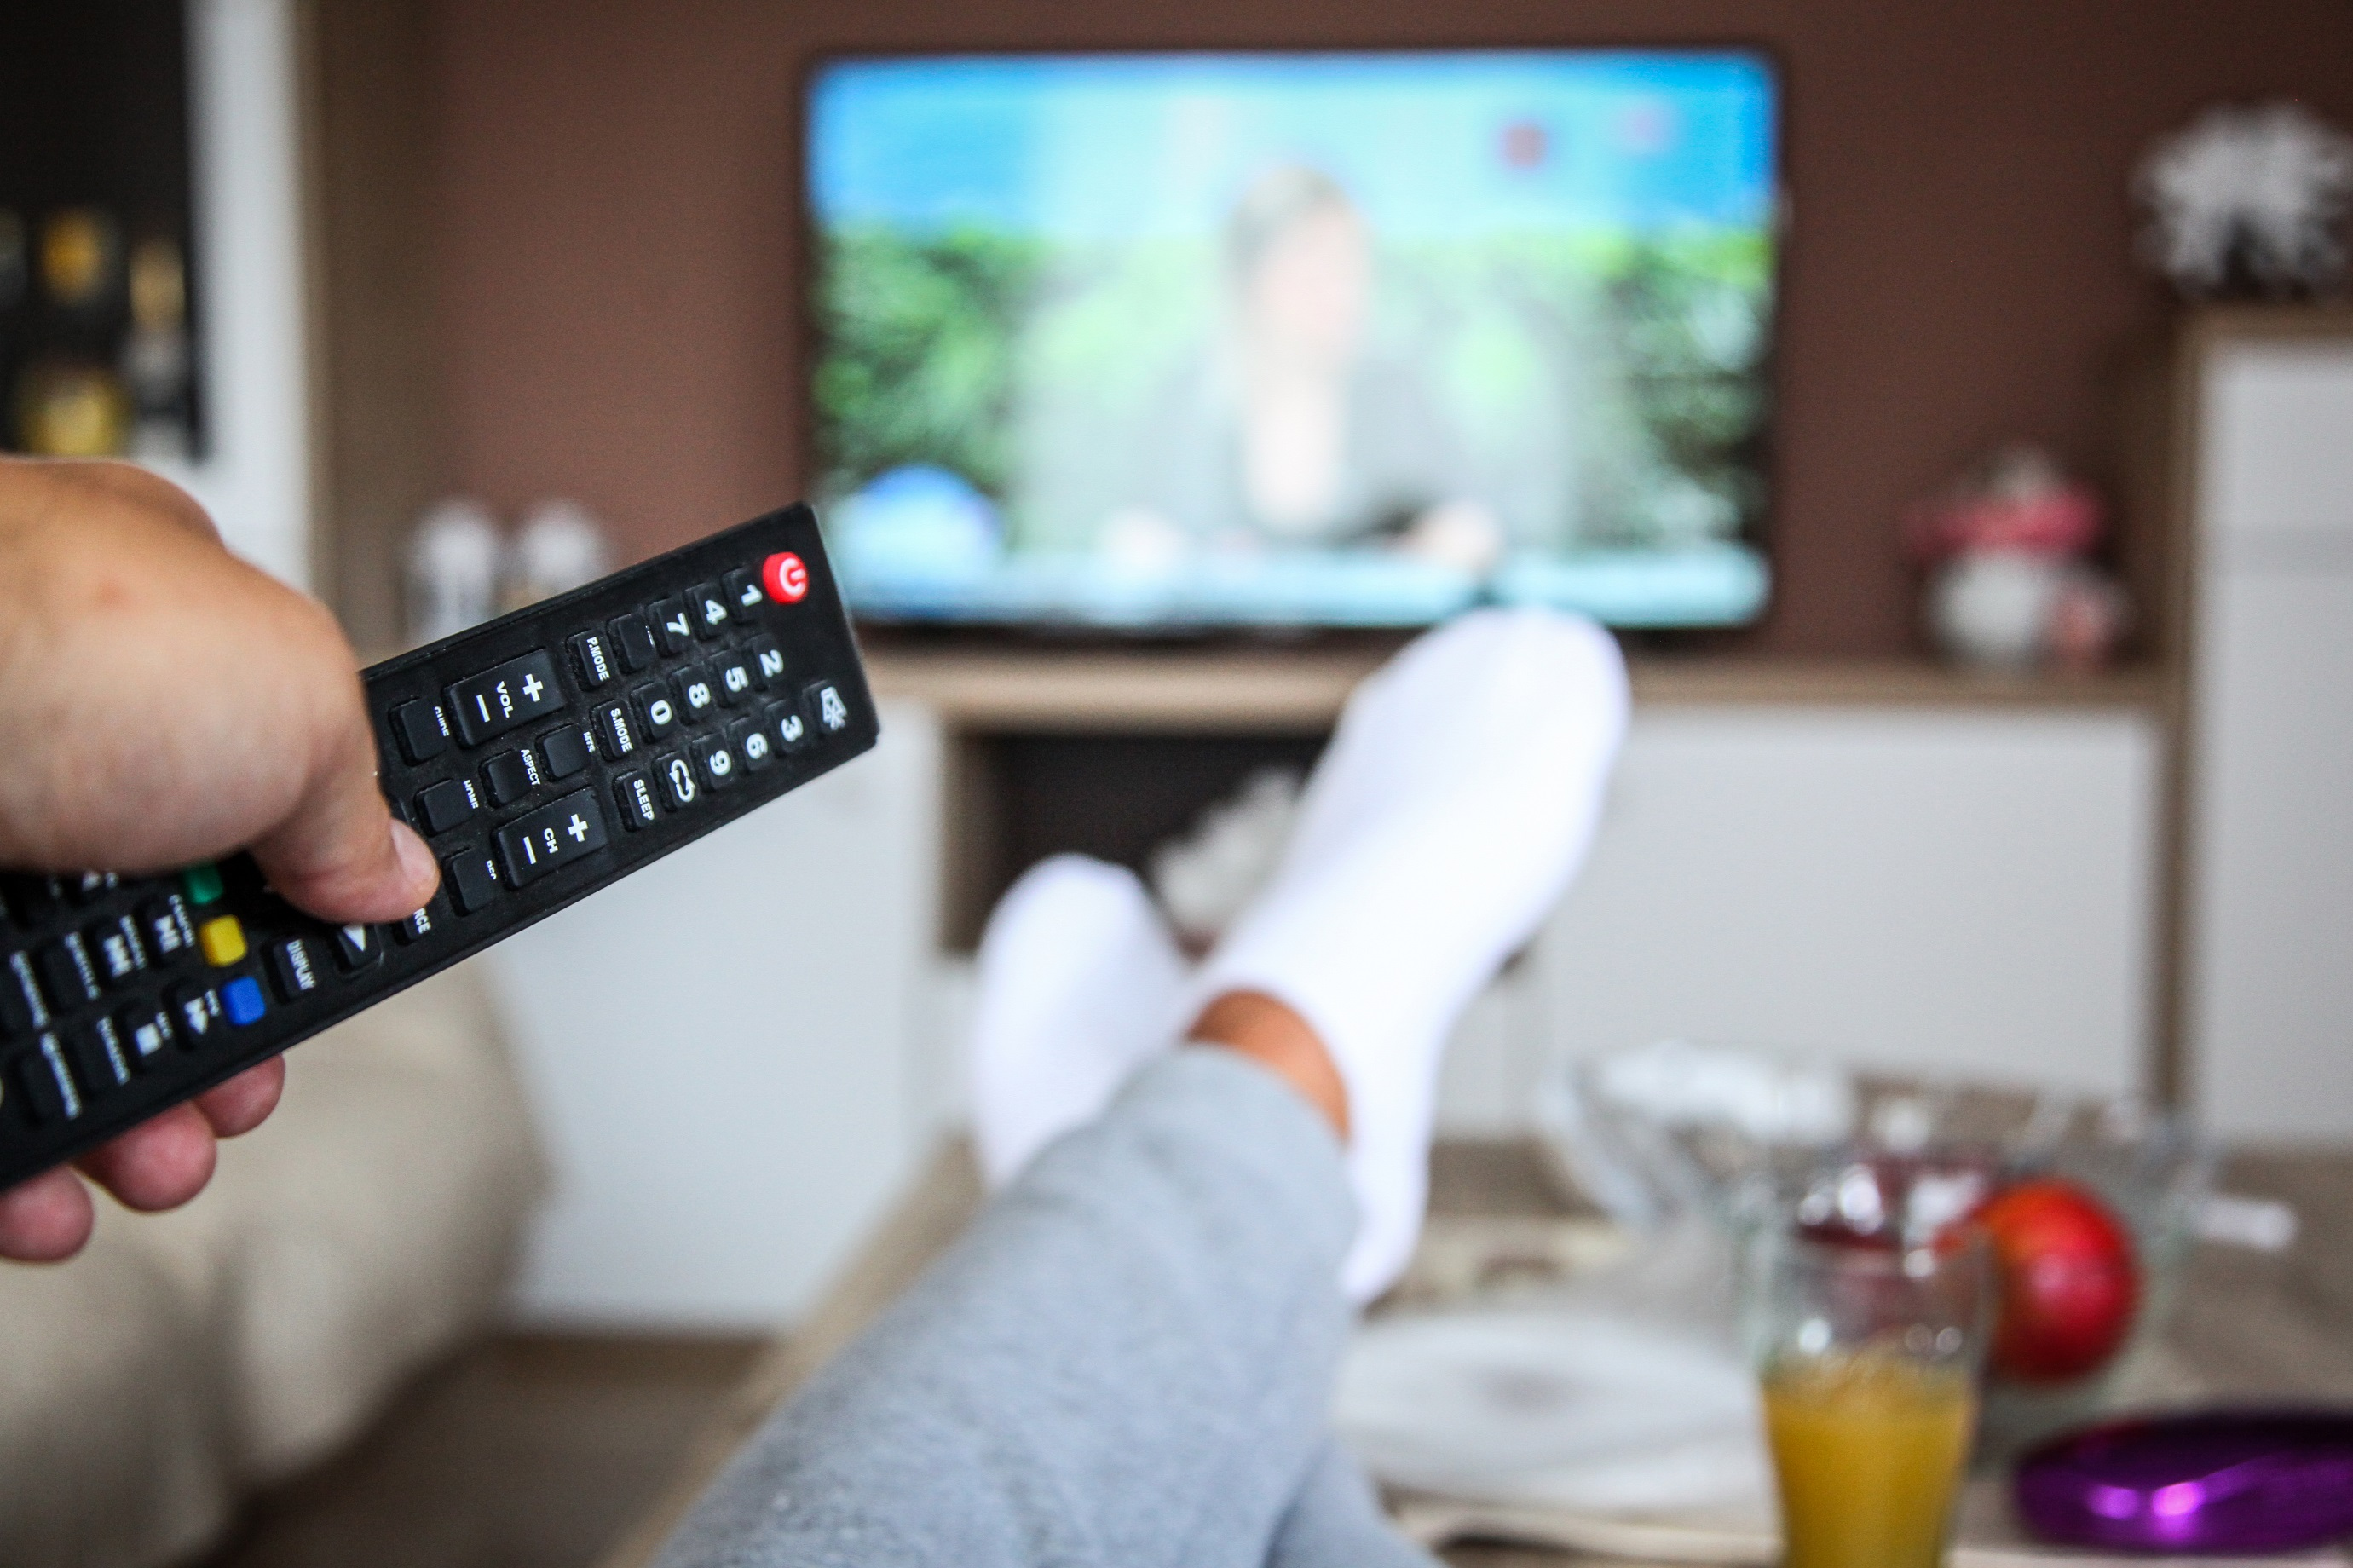 Sleeping With TV on Might Cause Weight Gain, Study Says | WPGC